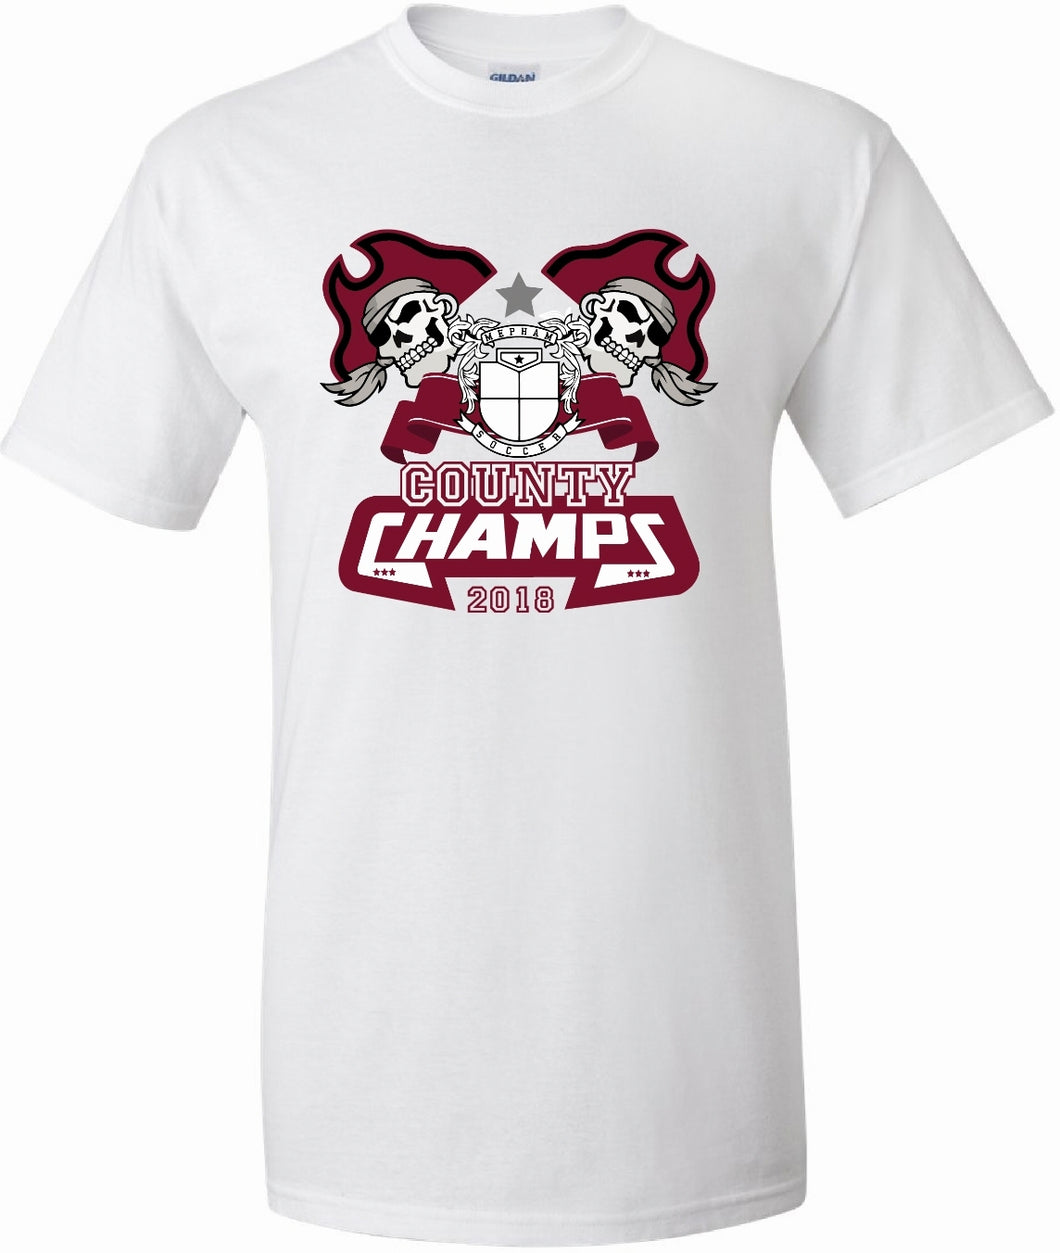 MEPHAM COUNTY CHAMPS 2018 TSHIRT MS0001 WHITE